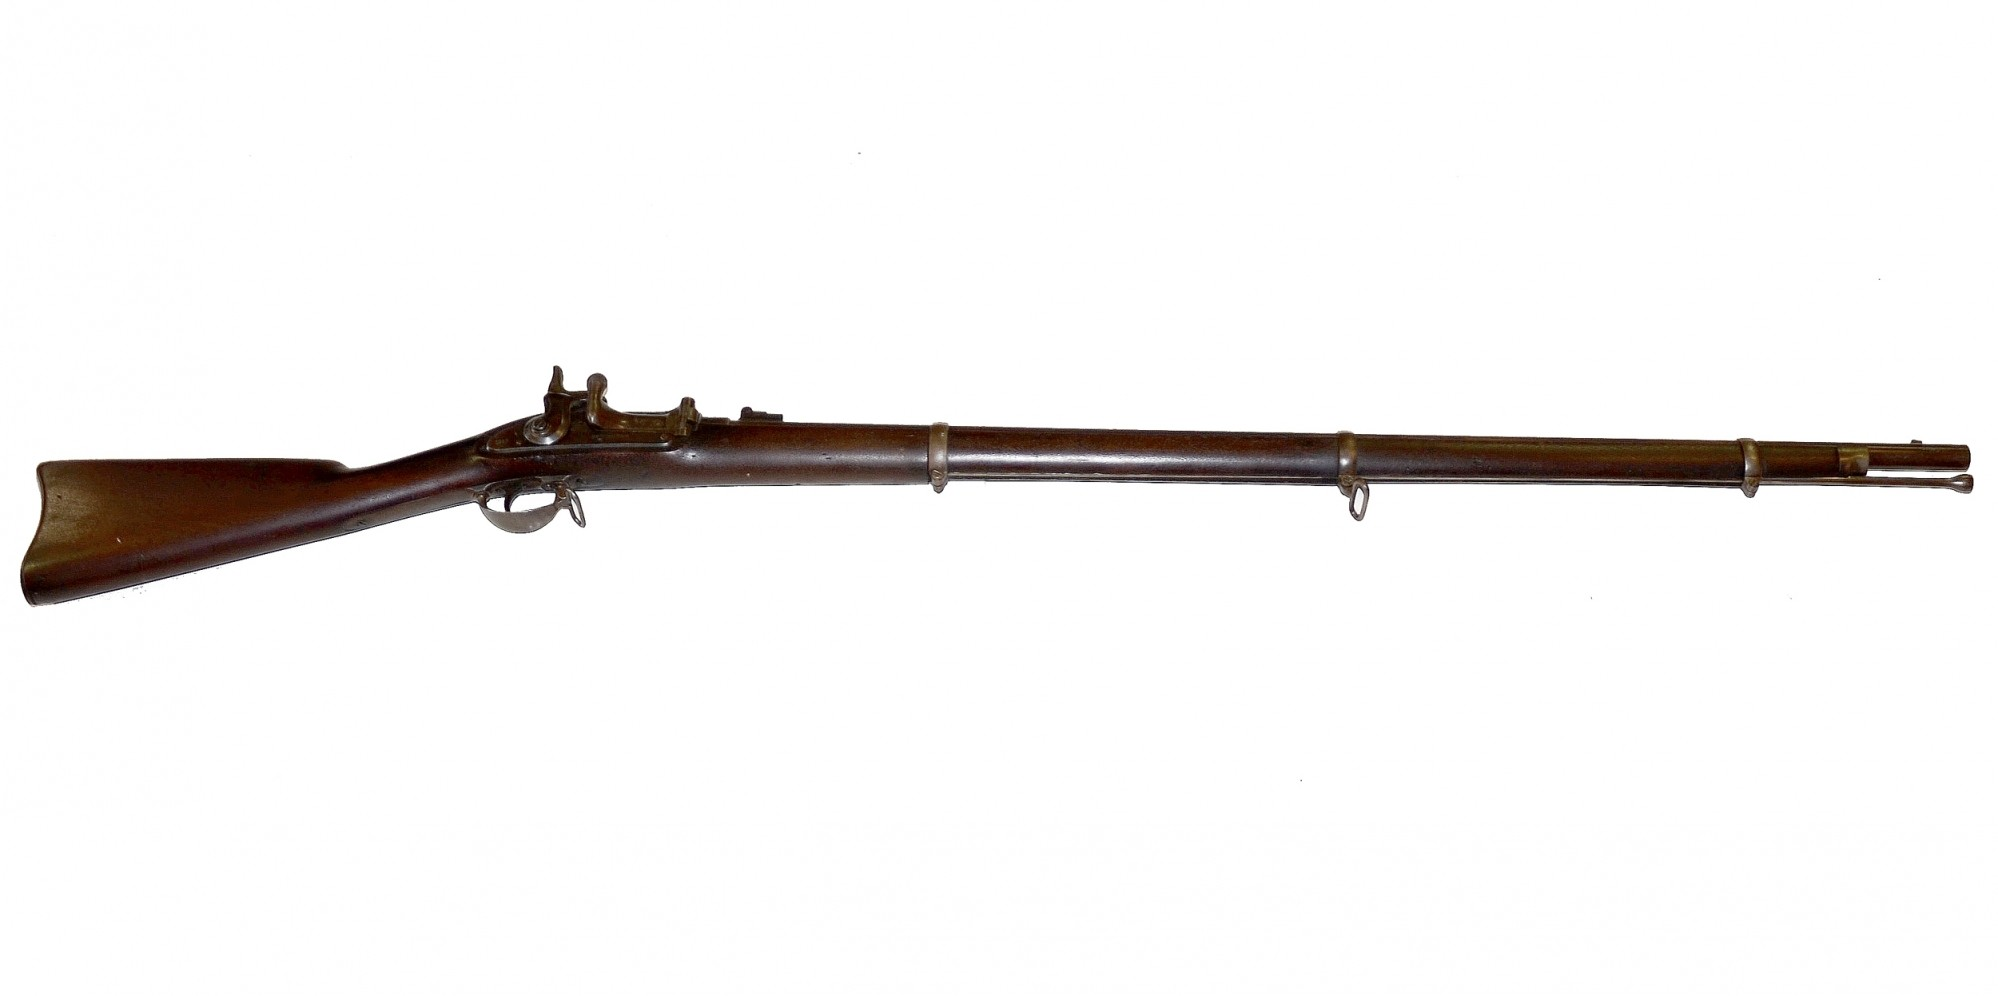 M1863 BRIDESBURG CONTRACT RIFLE-MUSKET WITH THE NEEDHAM CONVERSION TO A BREECHLOADING SYSTEM